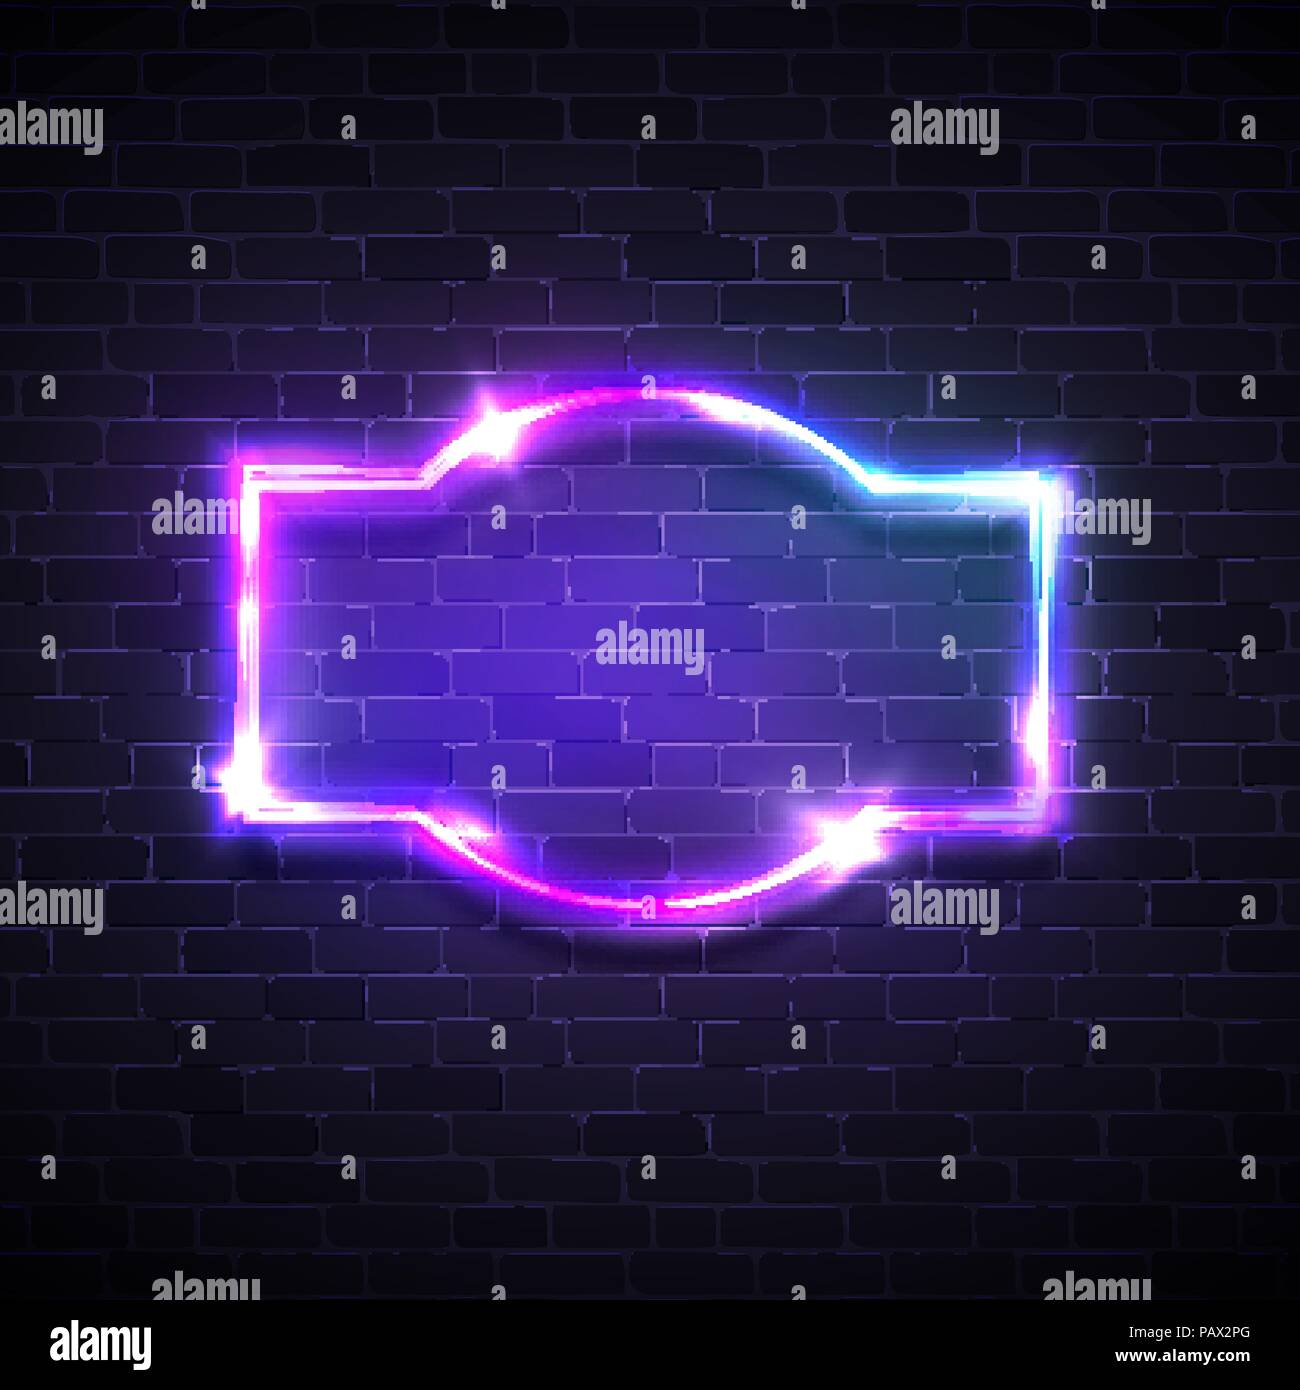 realistic neon led lights frame game show signage with glowing